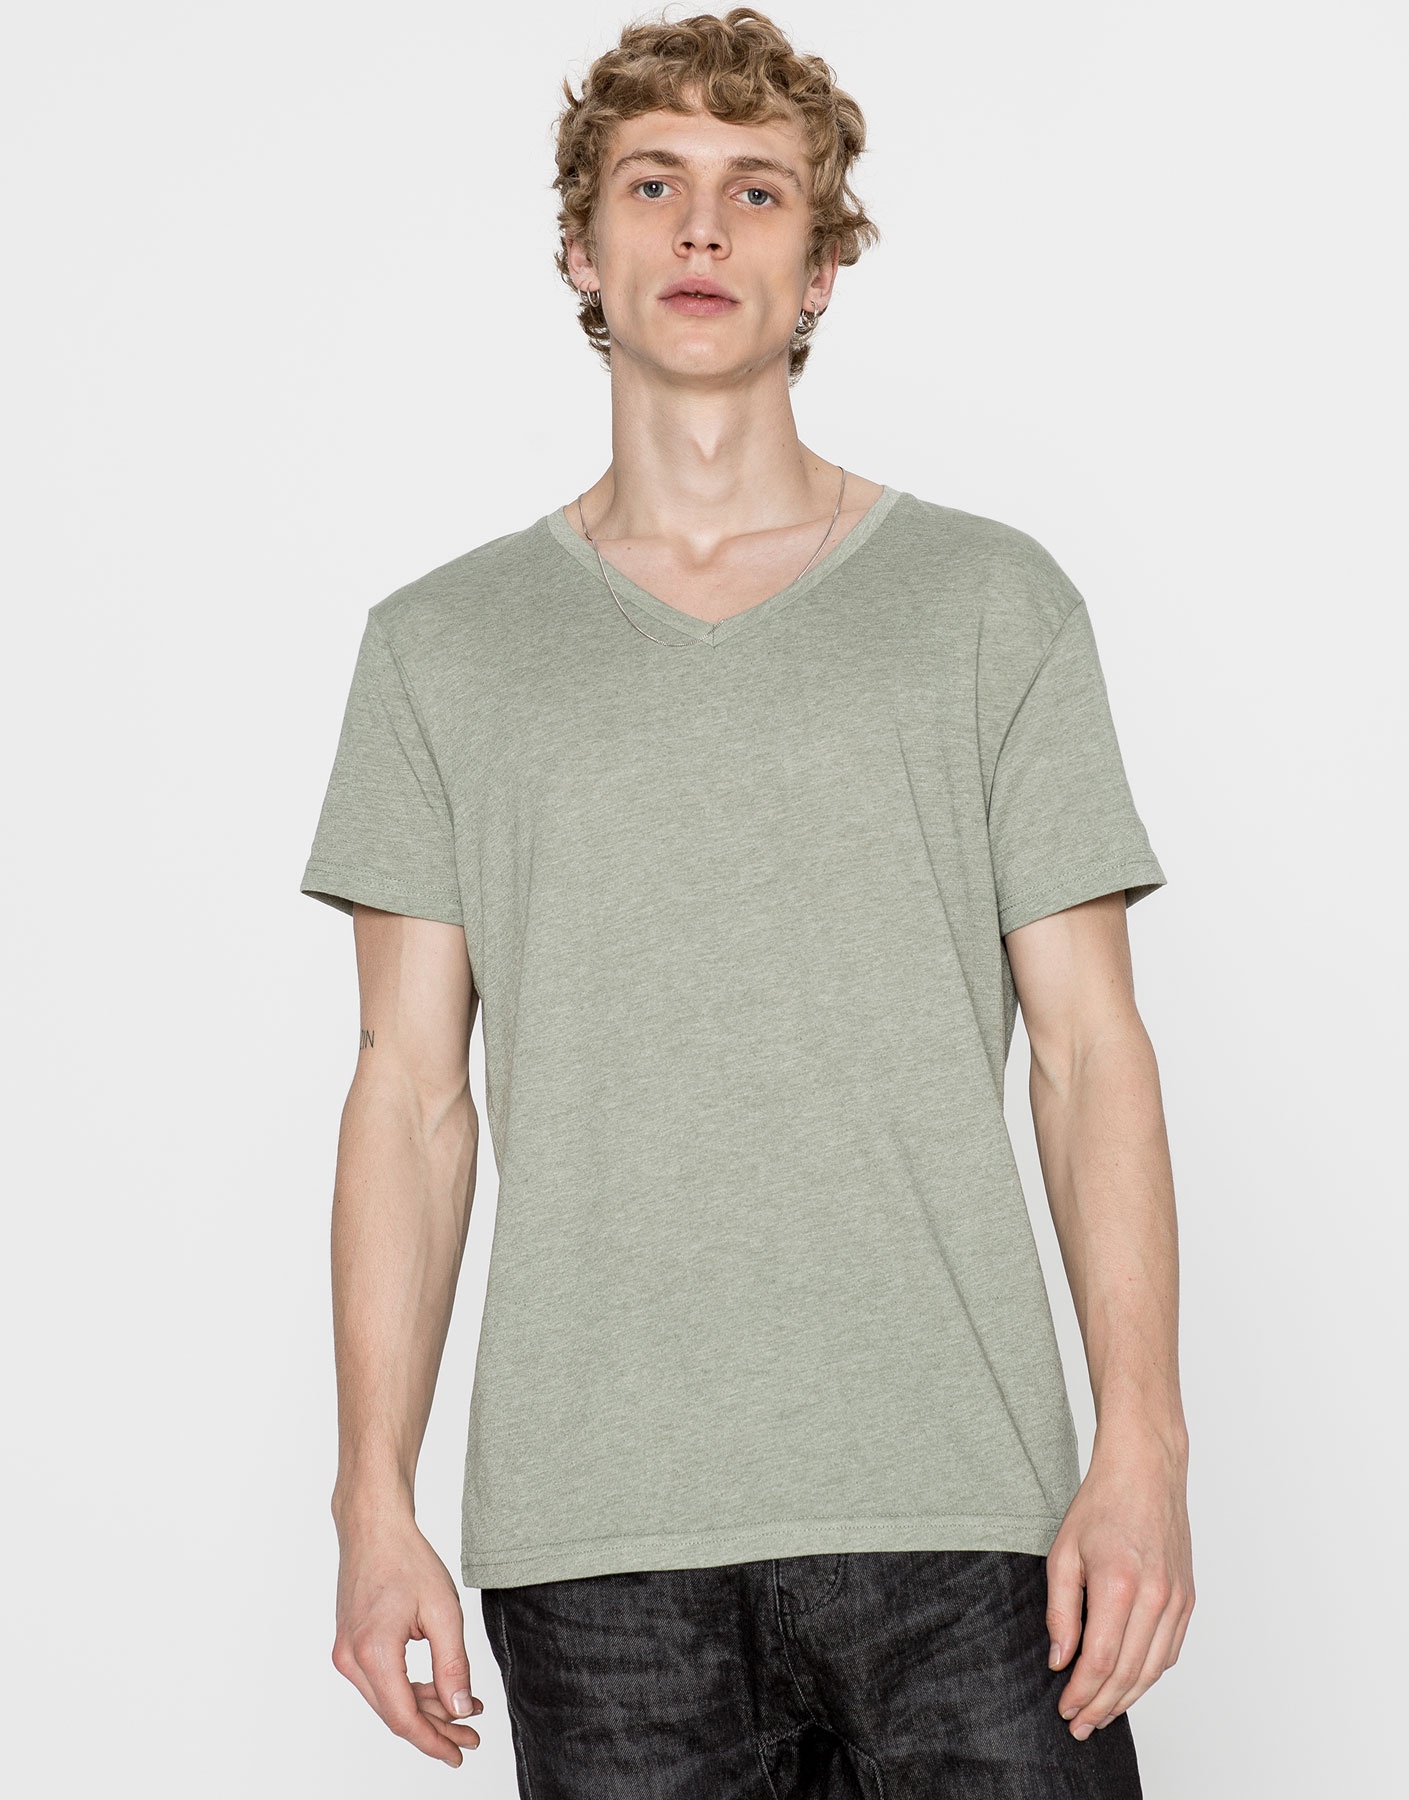 Basic v-neck short sleeve t-shirt